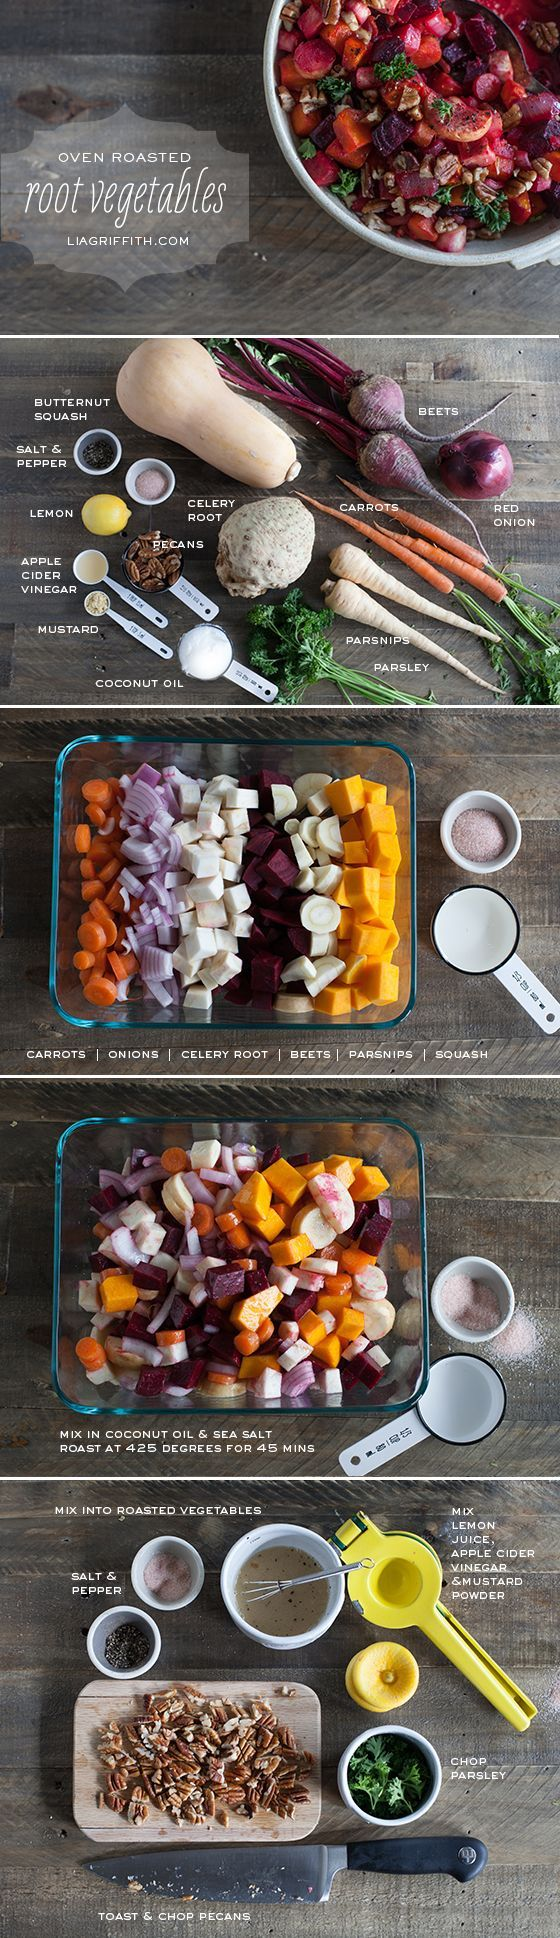 Food Lover Friday: Oven Roasted Root Vegetables